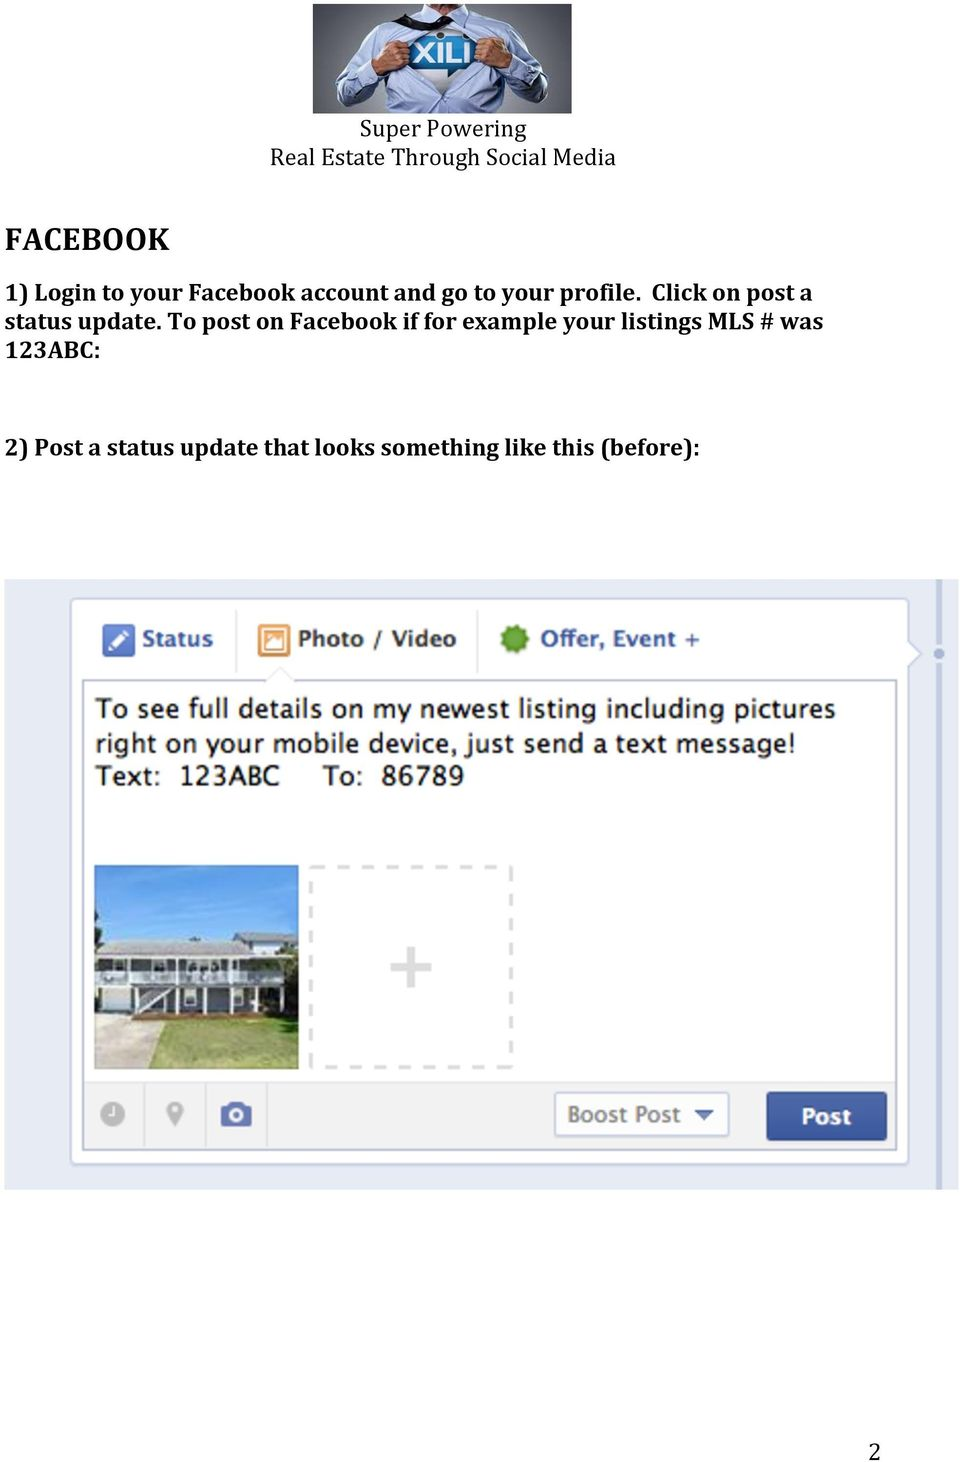 To post on Facebook if for example your listings MLS #